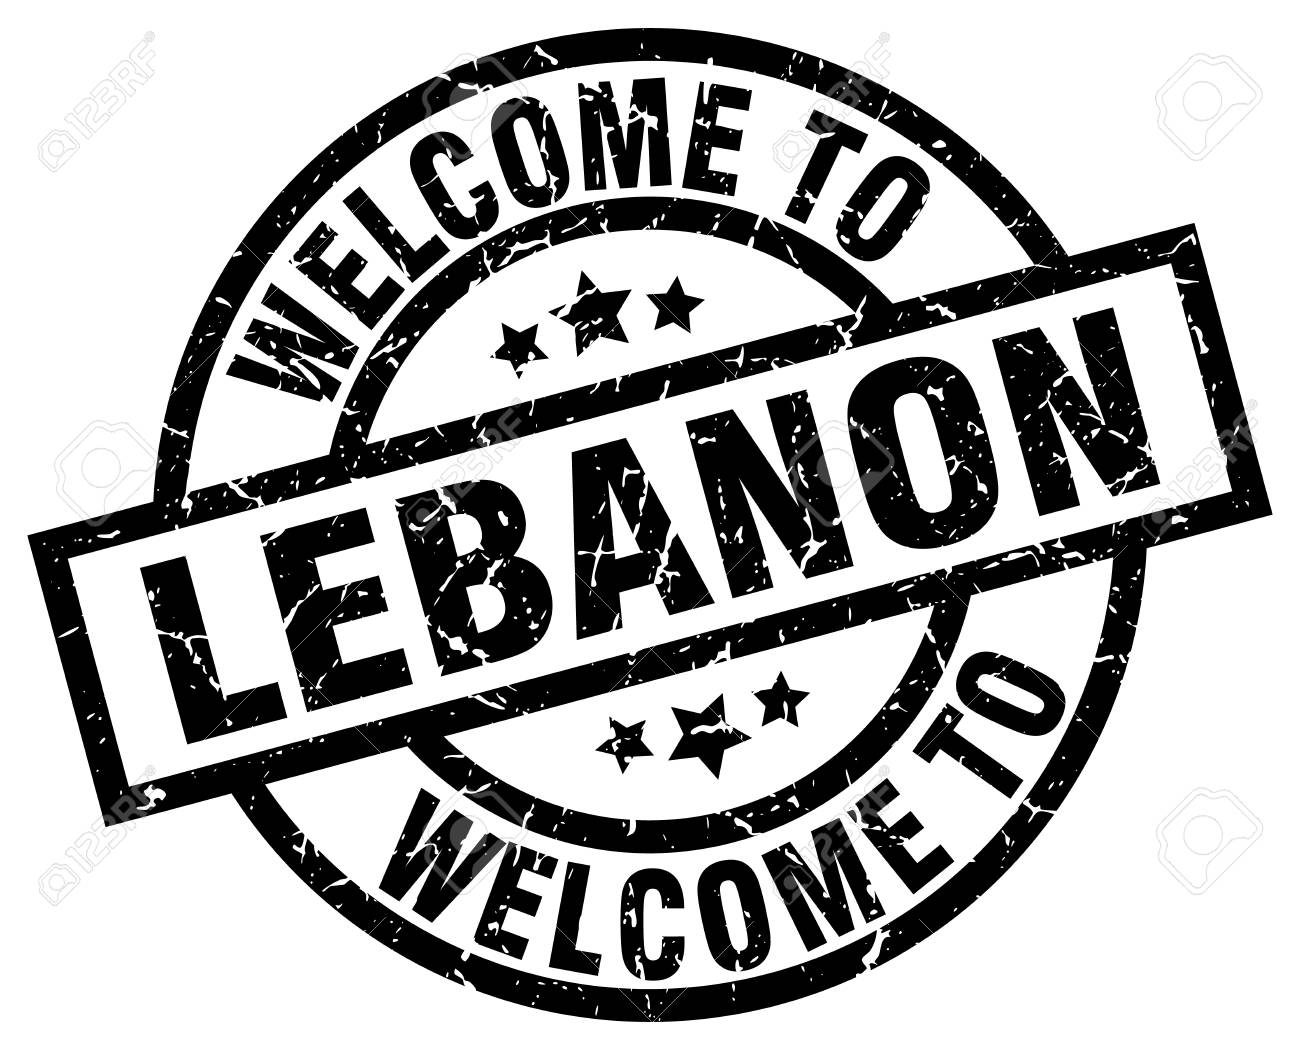 Welcome To Lebanon Black Stamp Royalty Free Cliparts Vectors And